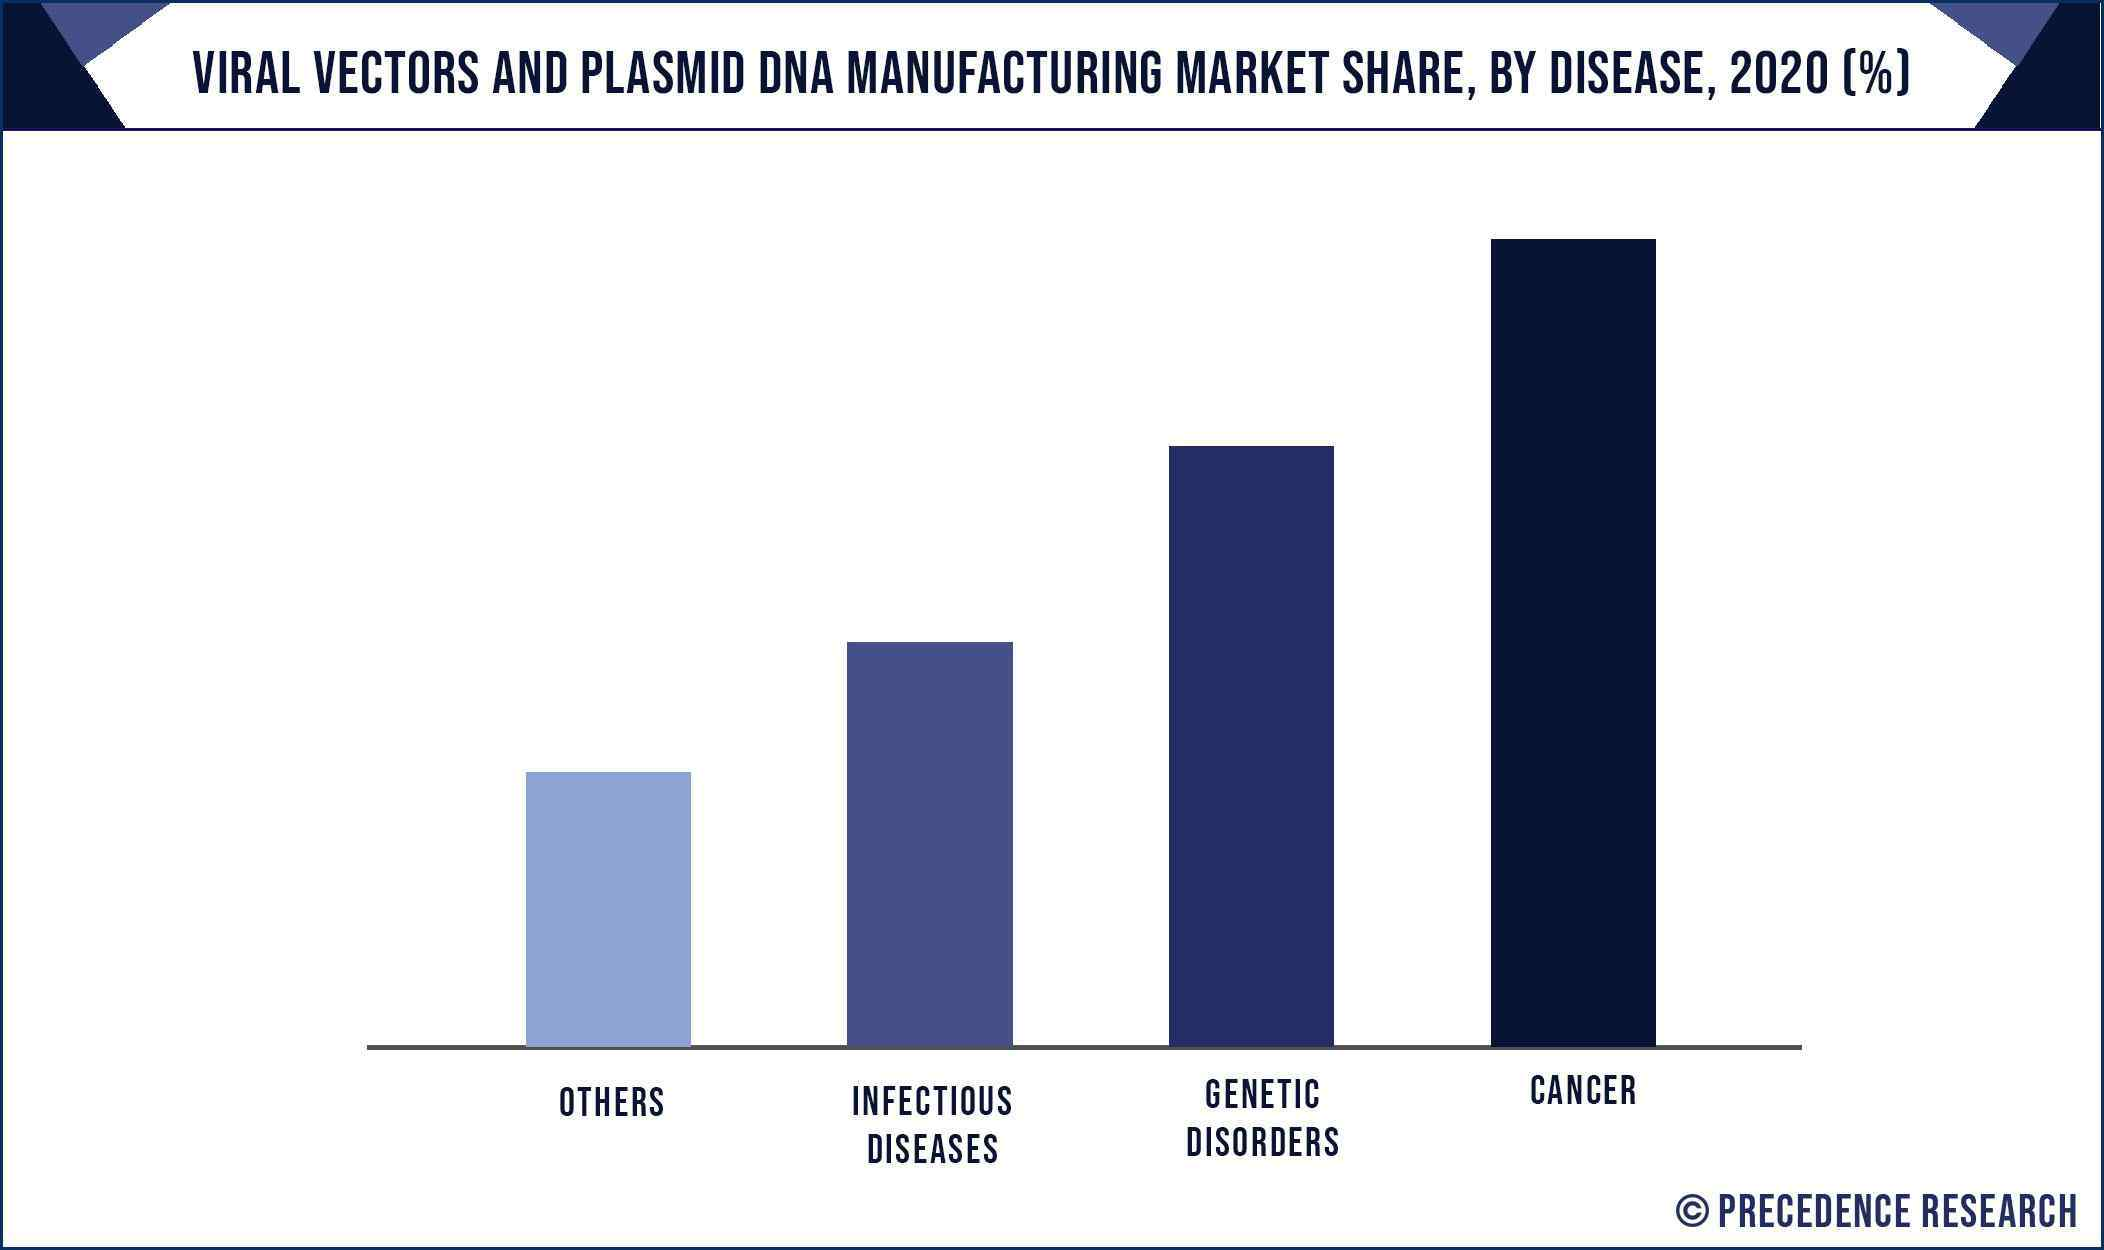 Viral Vectors and Plasmid DNA Manufacturing Market Share, By Disease, 2020 (%)